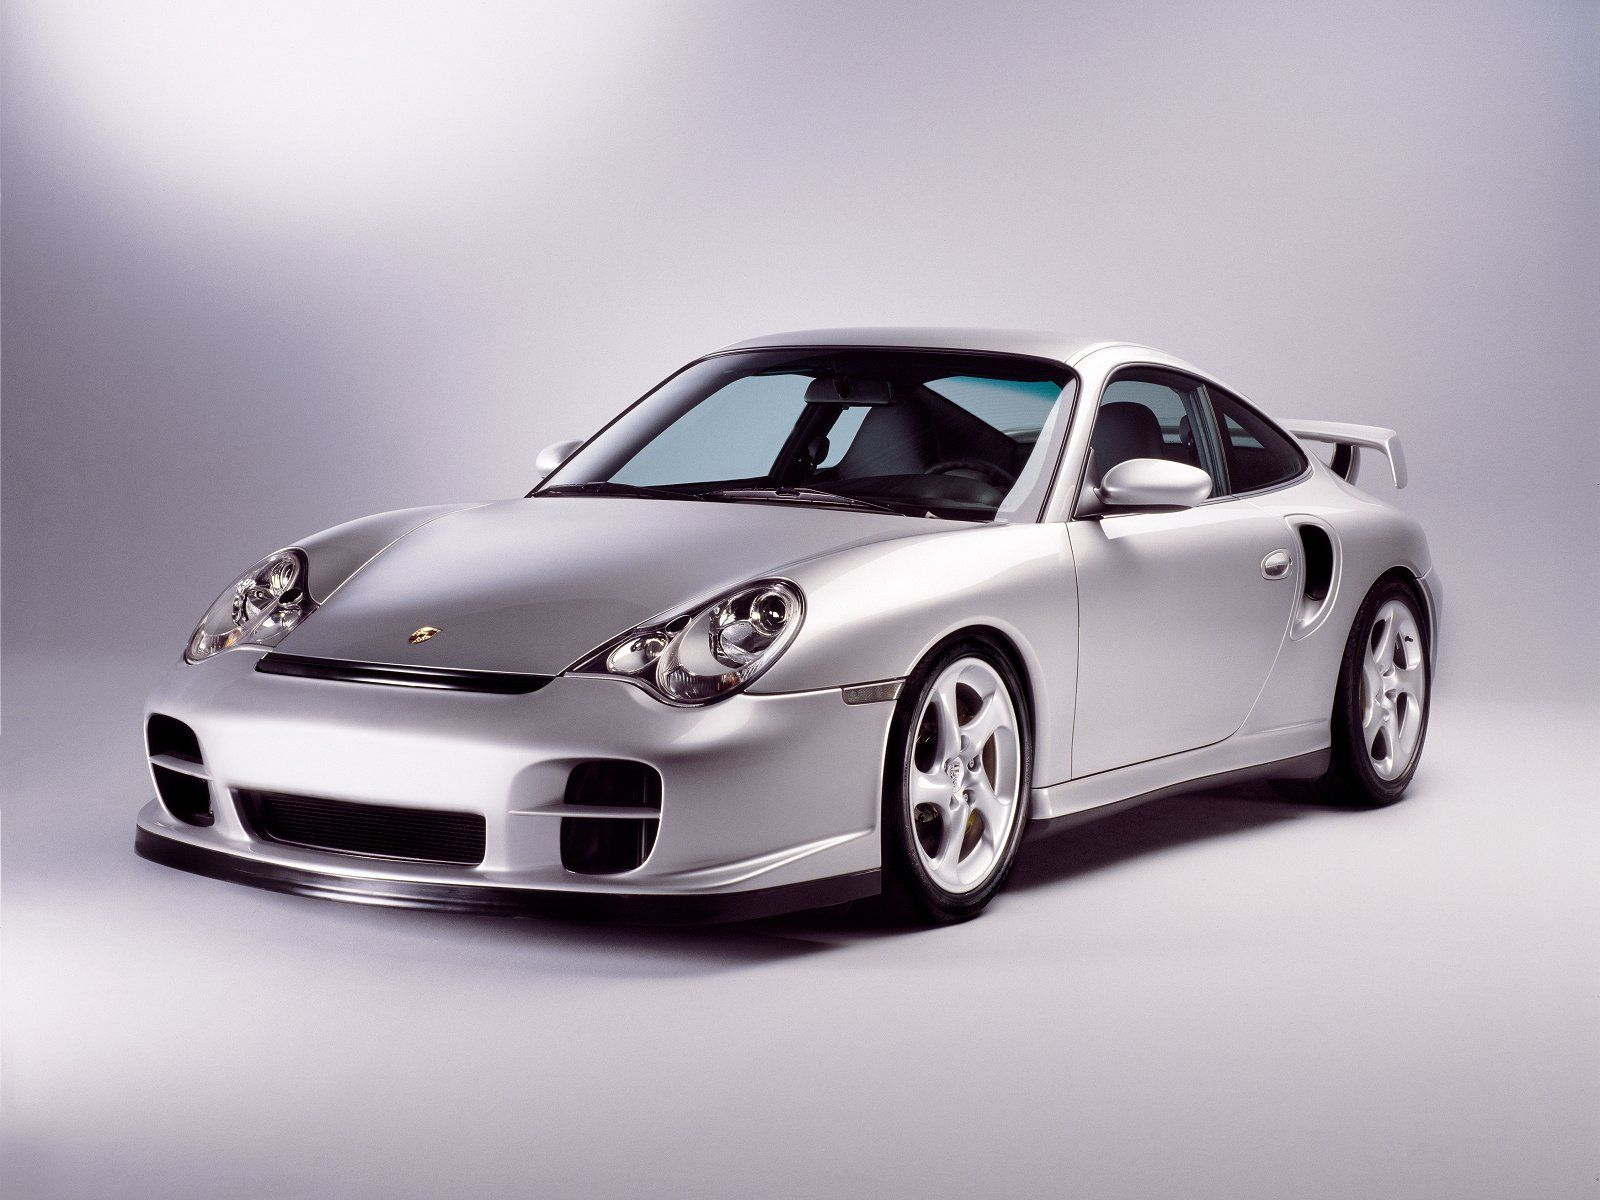 8eb160e86e4d672a9cc0a47badd18006 Interesting Porsche 911 Gt2 and Gt3 Cars Trend